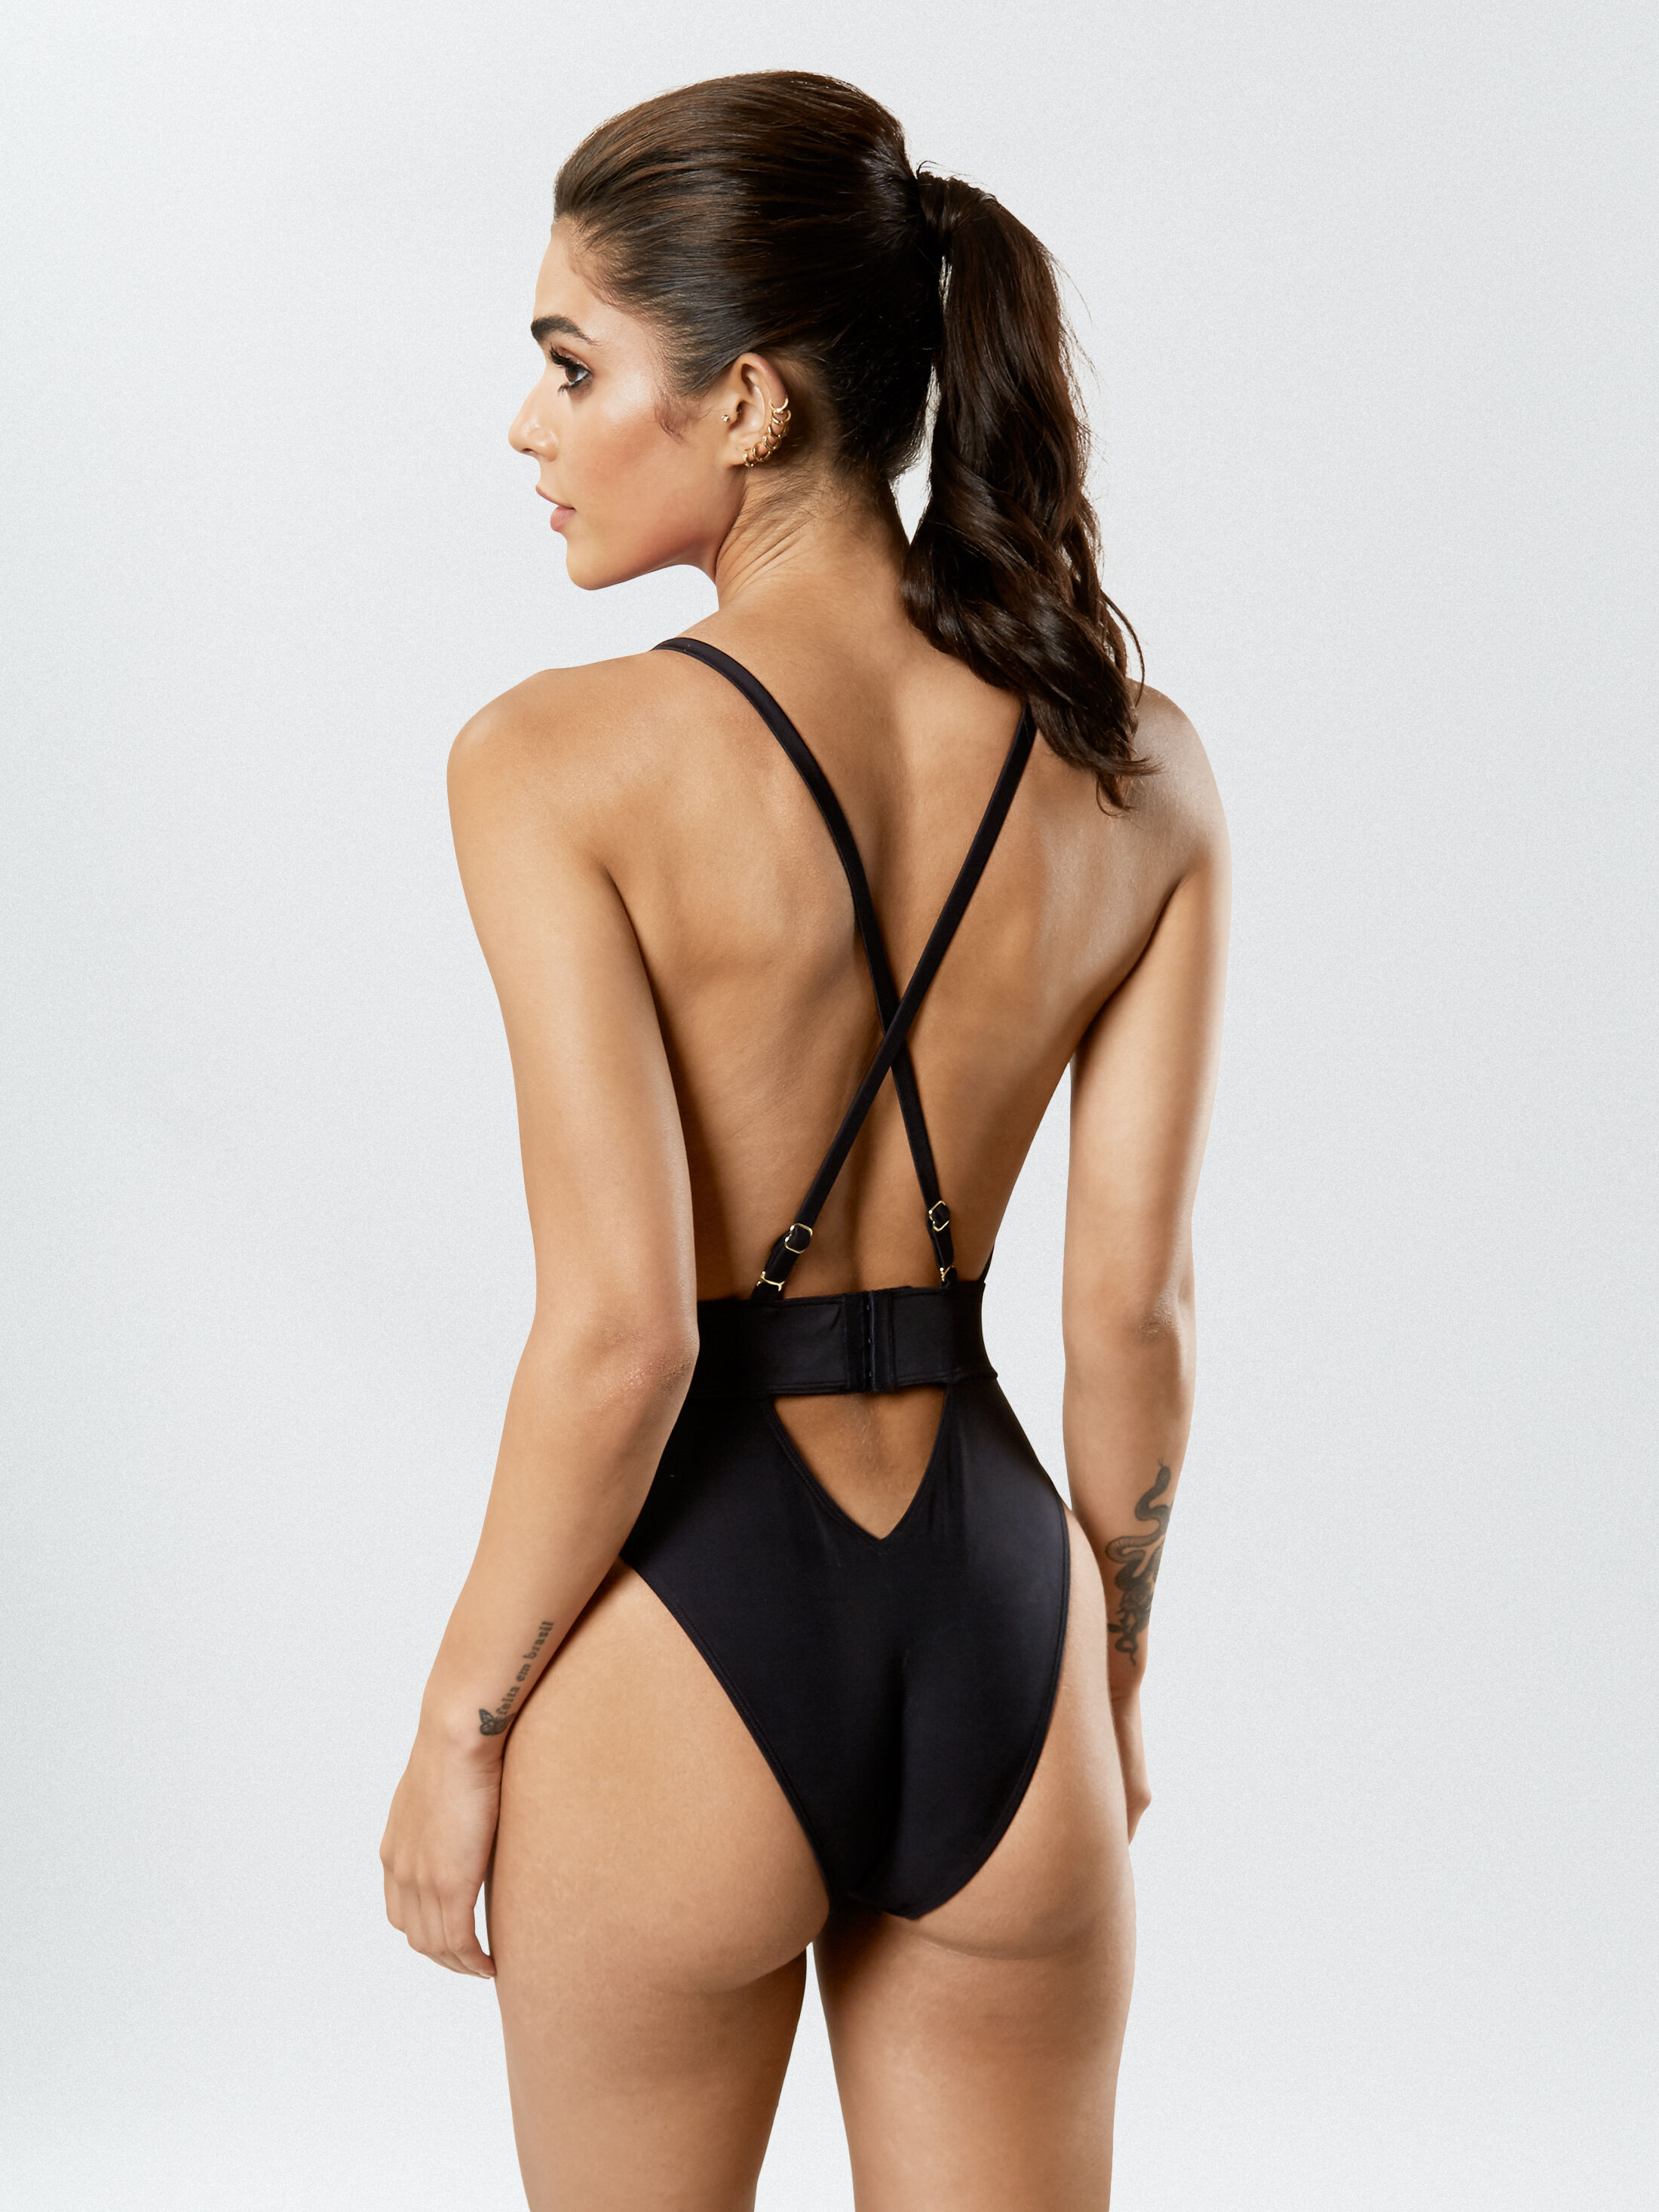 Ann Summers Sultry Evening Brief Black //Rose Gold BNWT Size 8-18